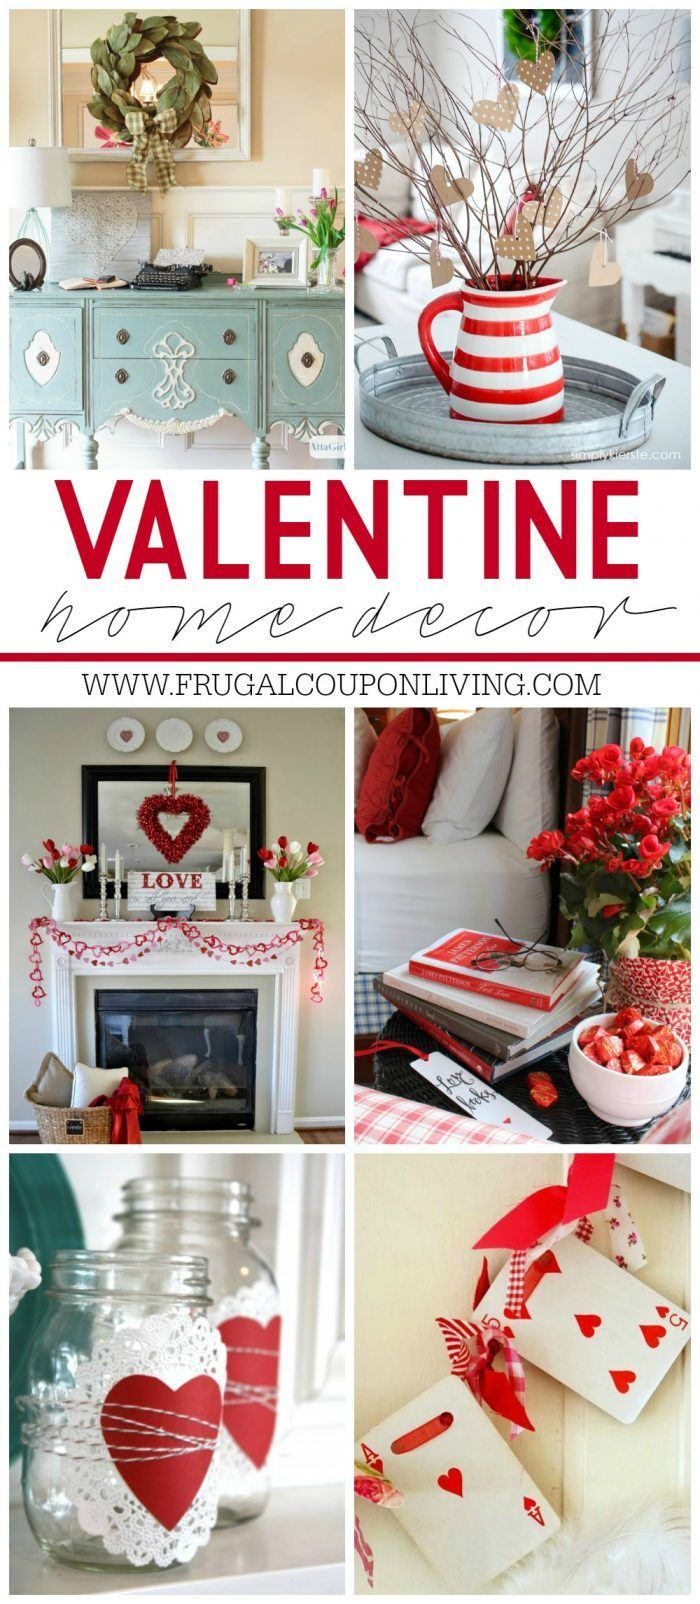 valentine home decor ideas - Free Home Decorating Ideas Photos